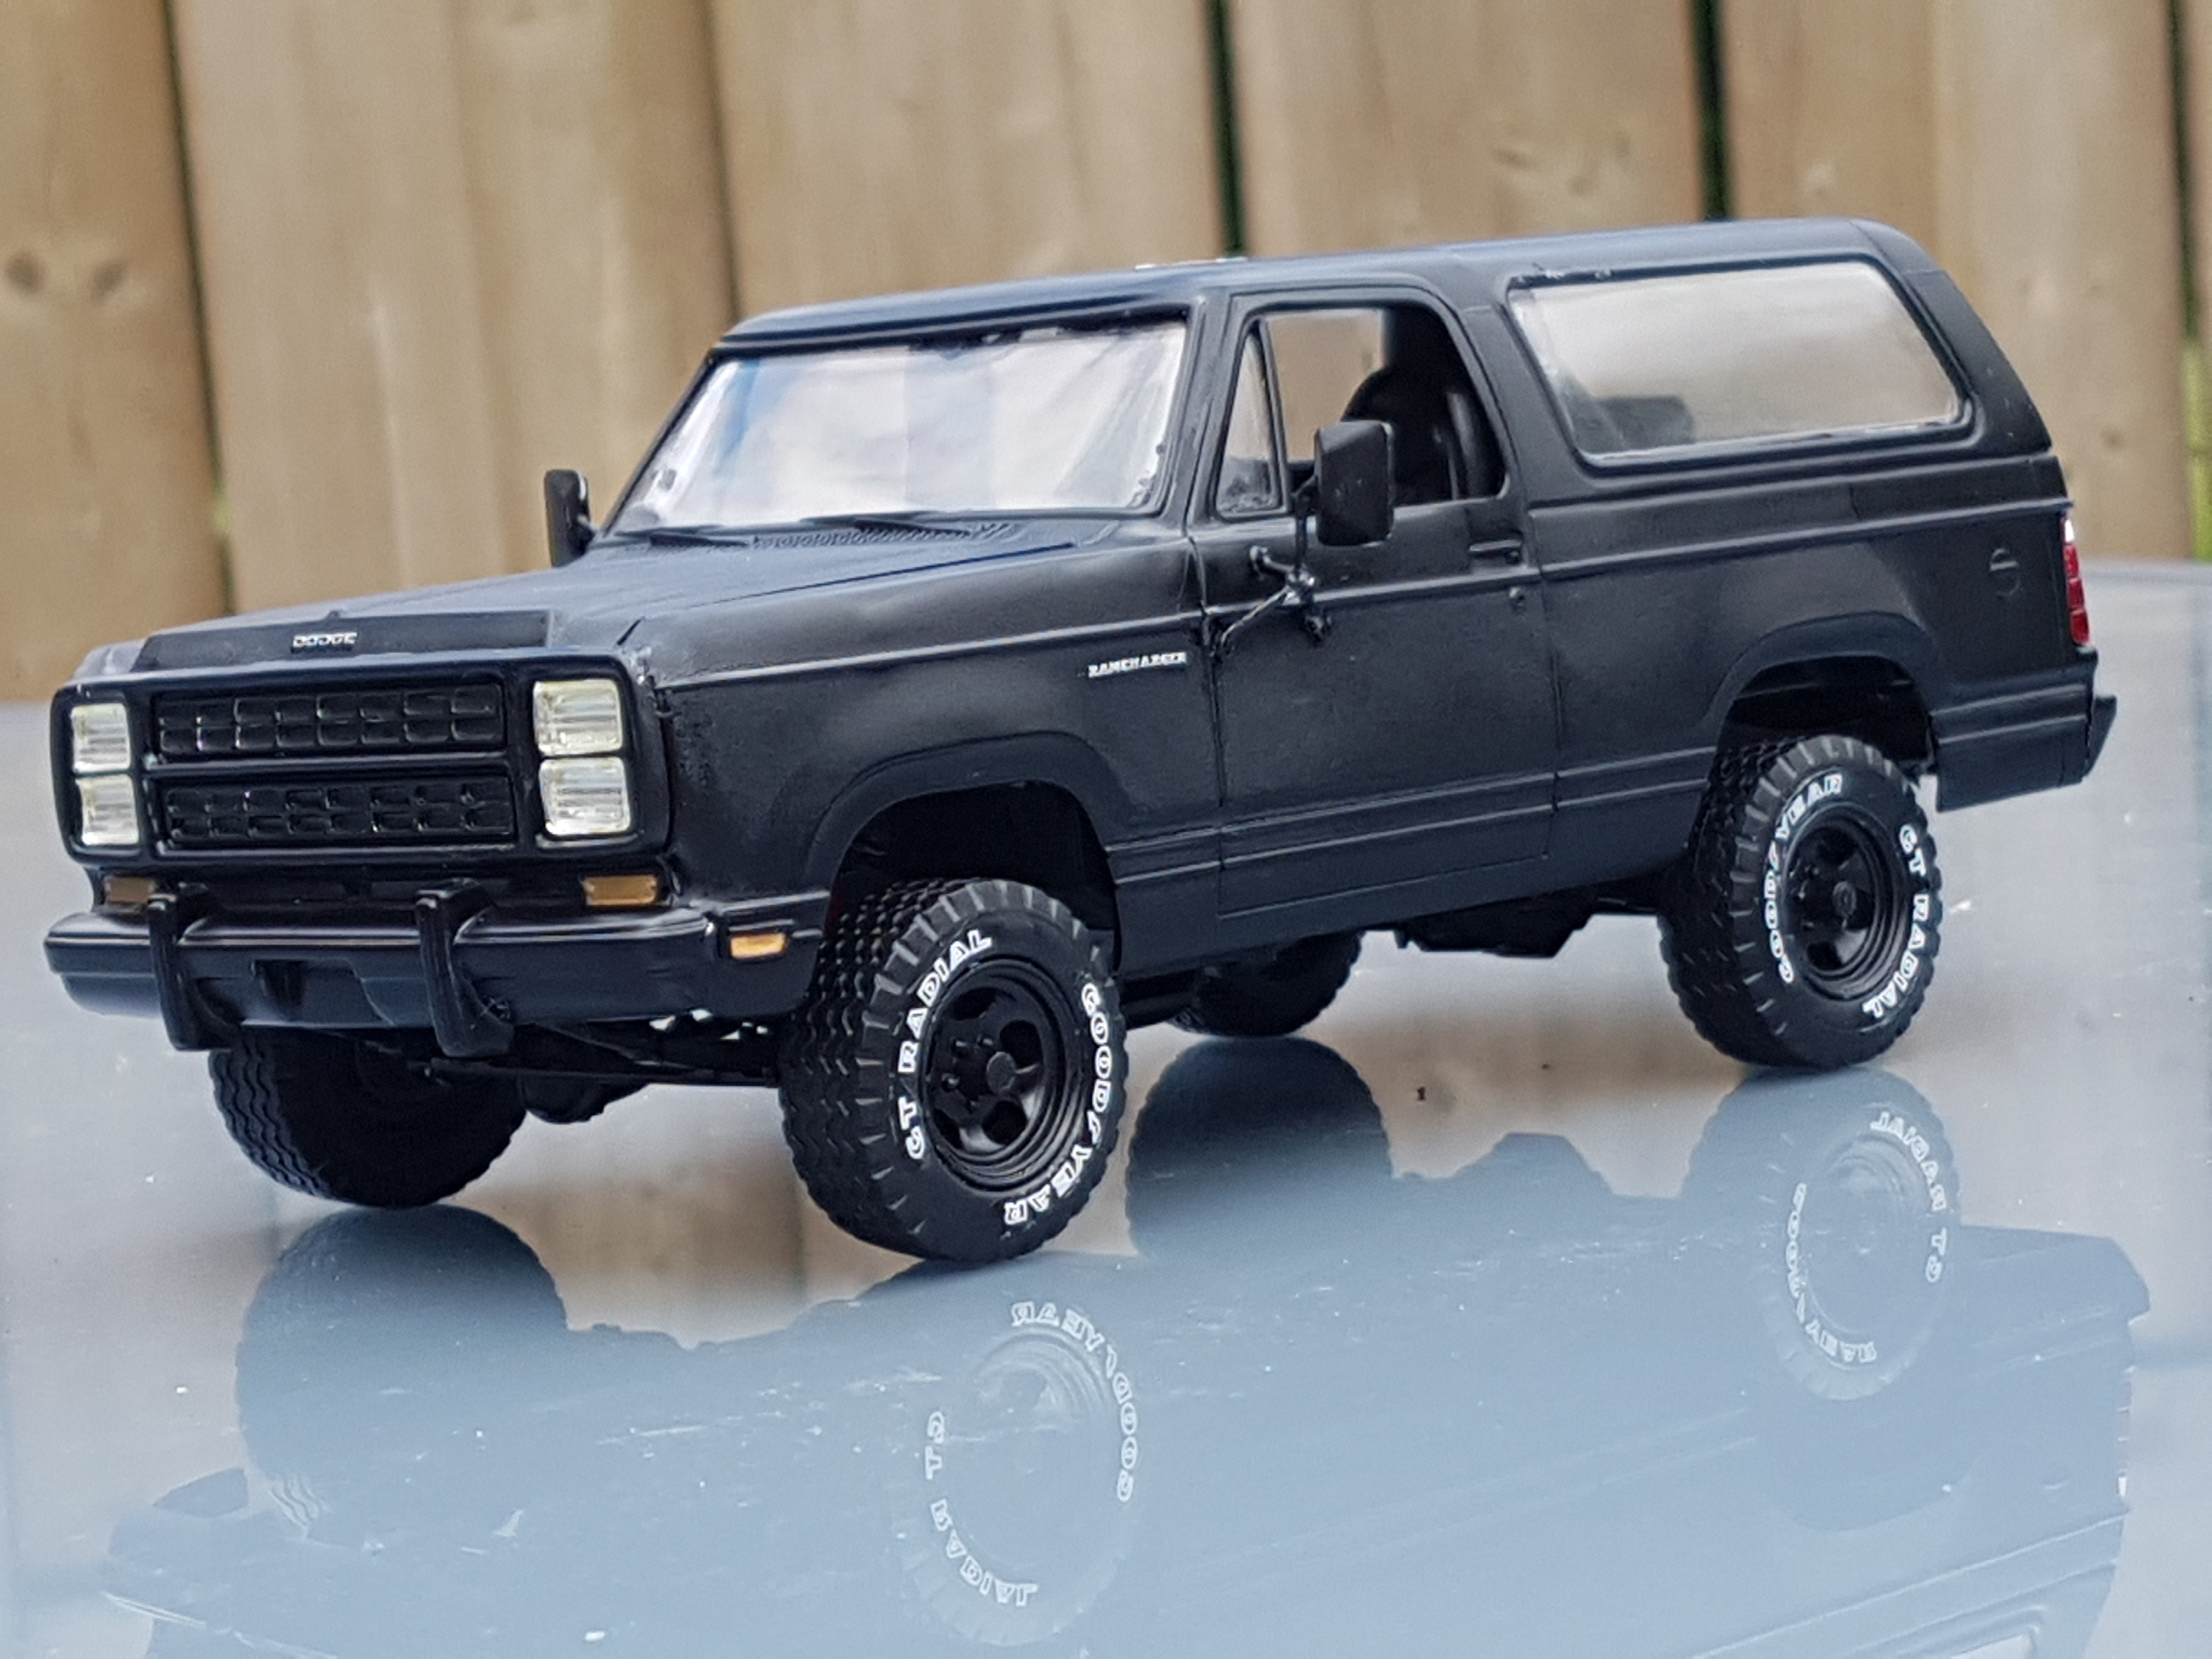 1980 Dodge Ramcharger Revell Rays Kits Ford Bronco Lifted